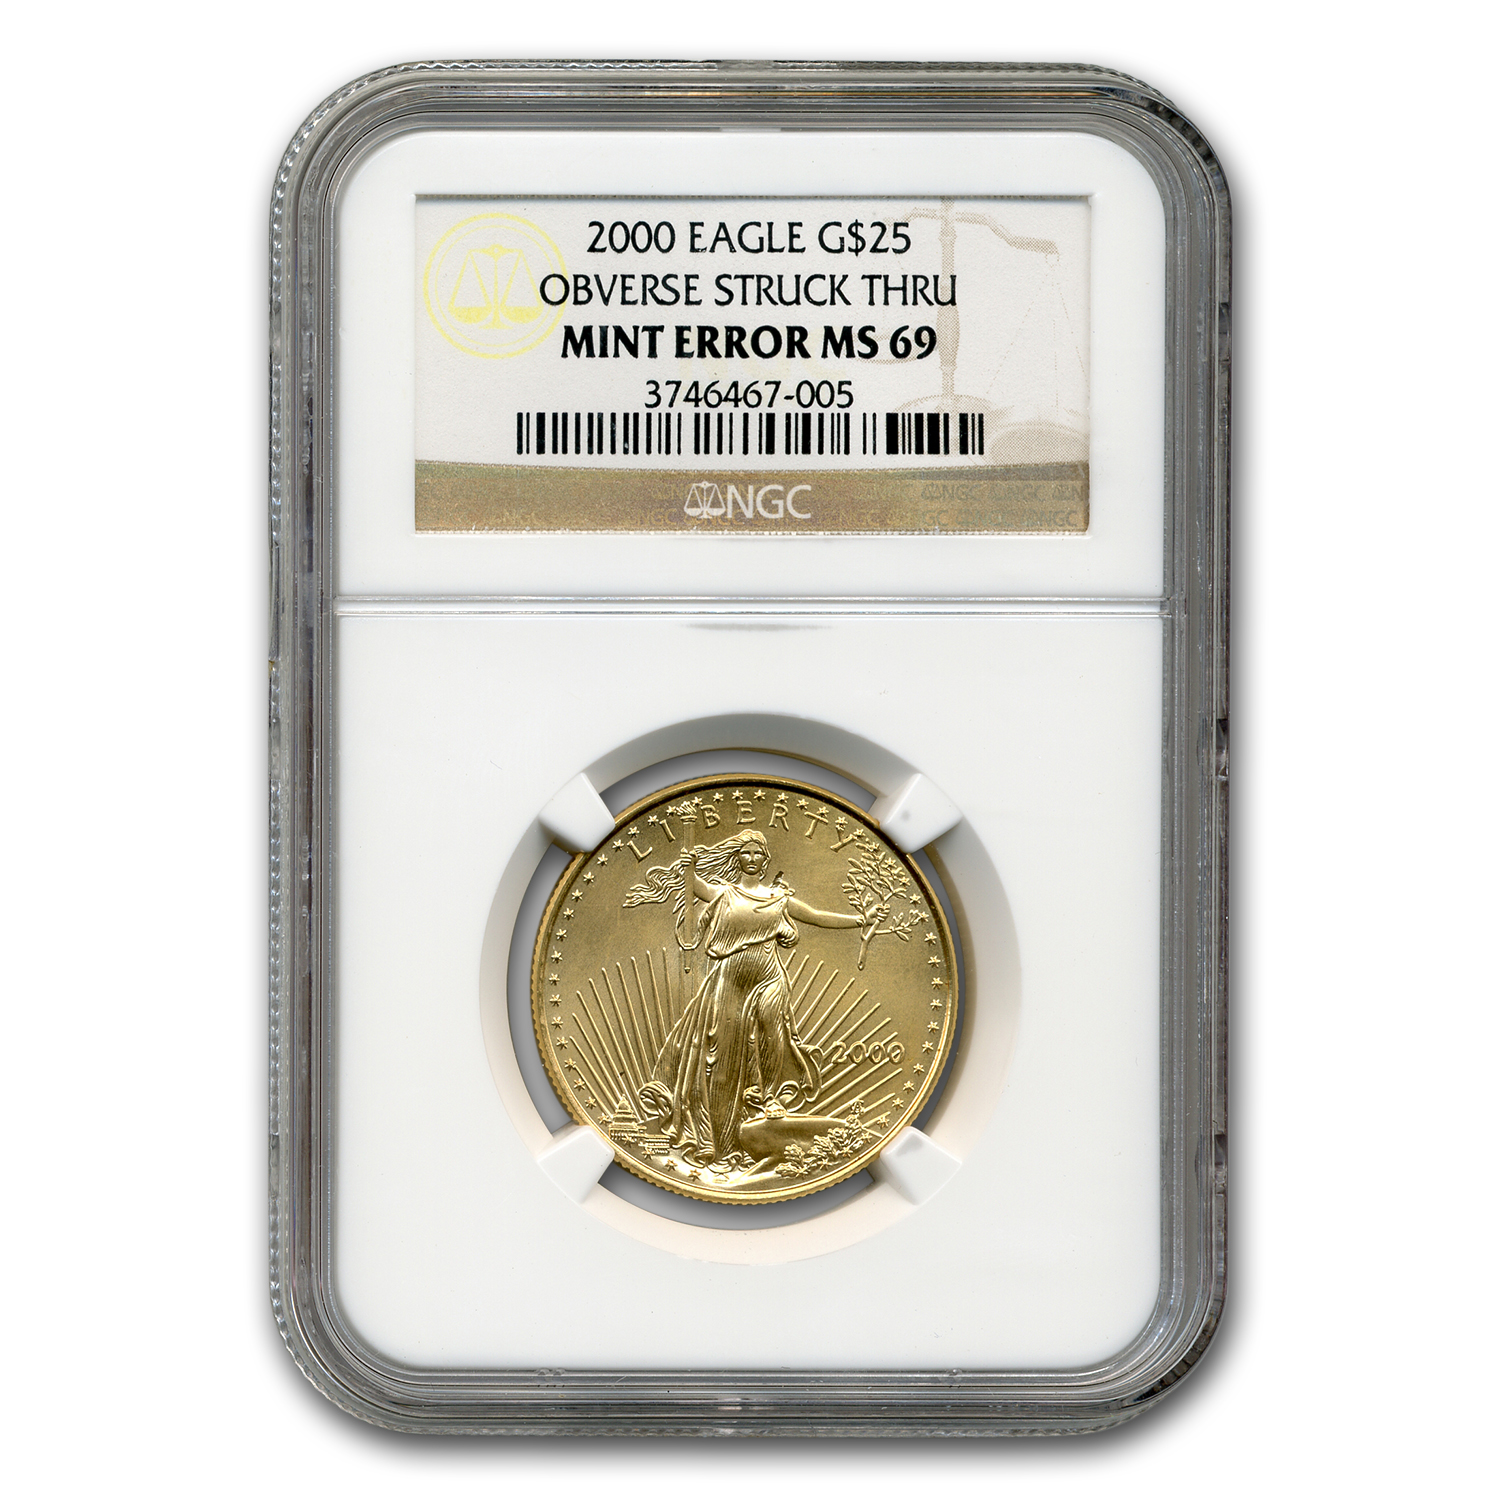 2000 1/2 oz Gold American Eagle MS-69 NGC (Obv Mint Error)